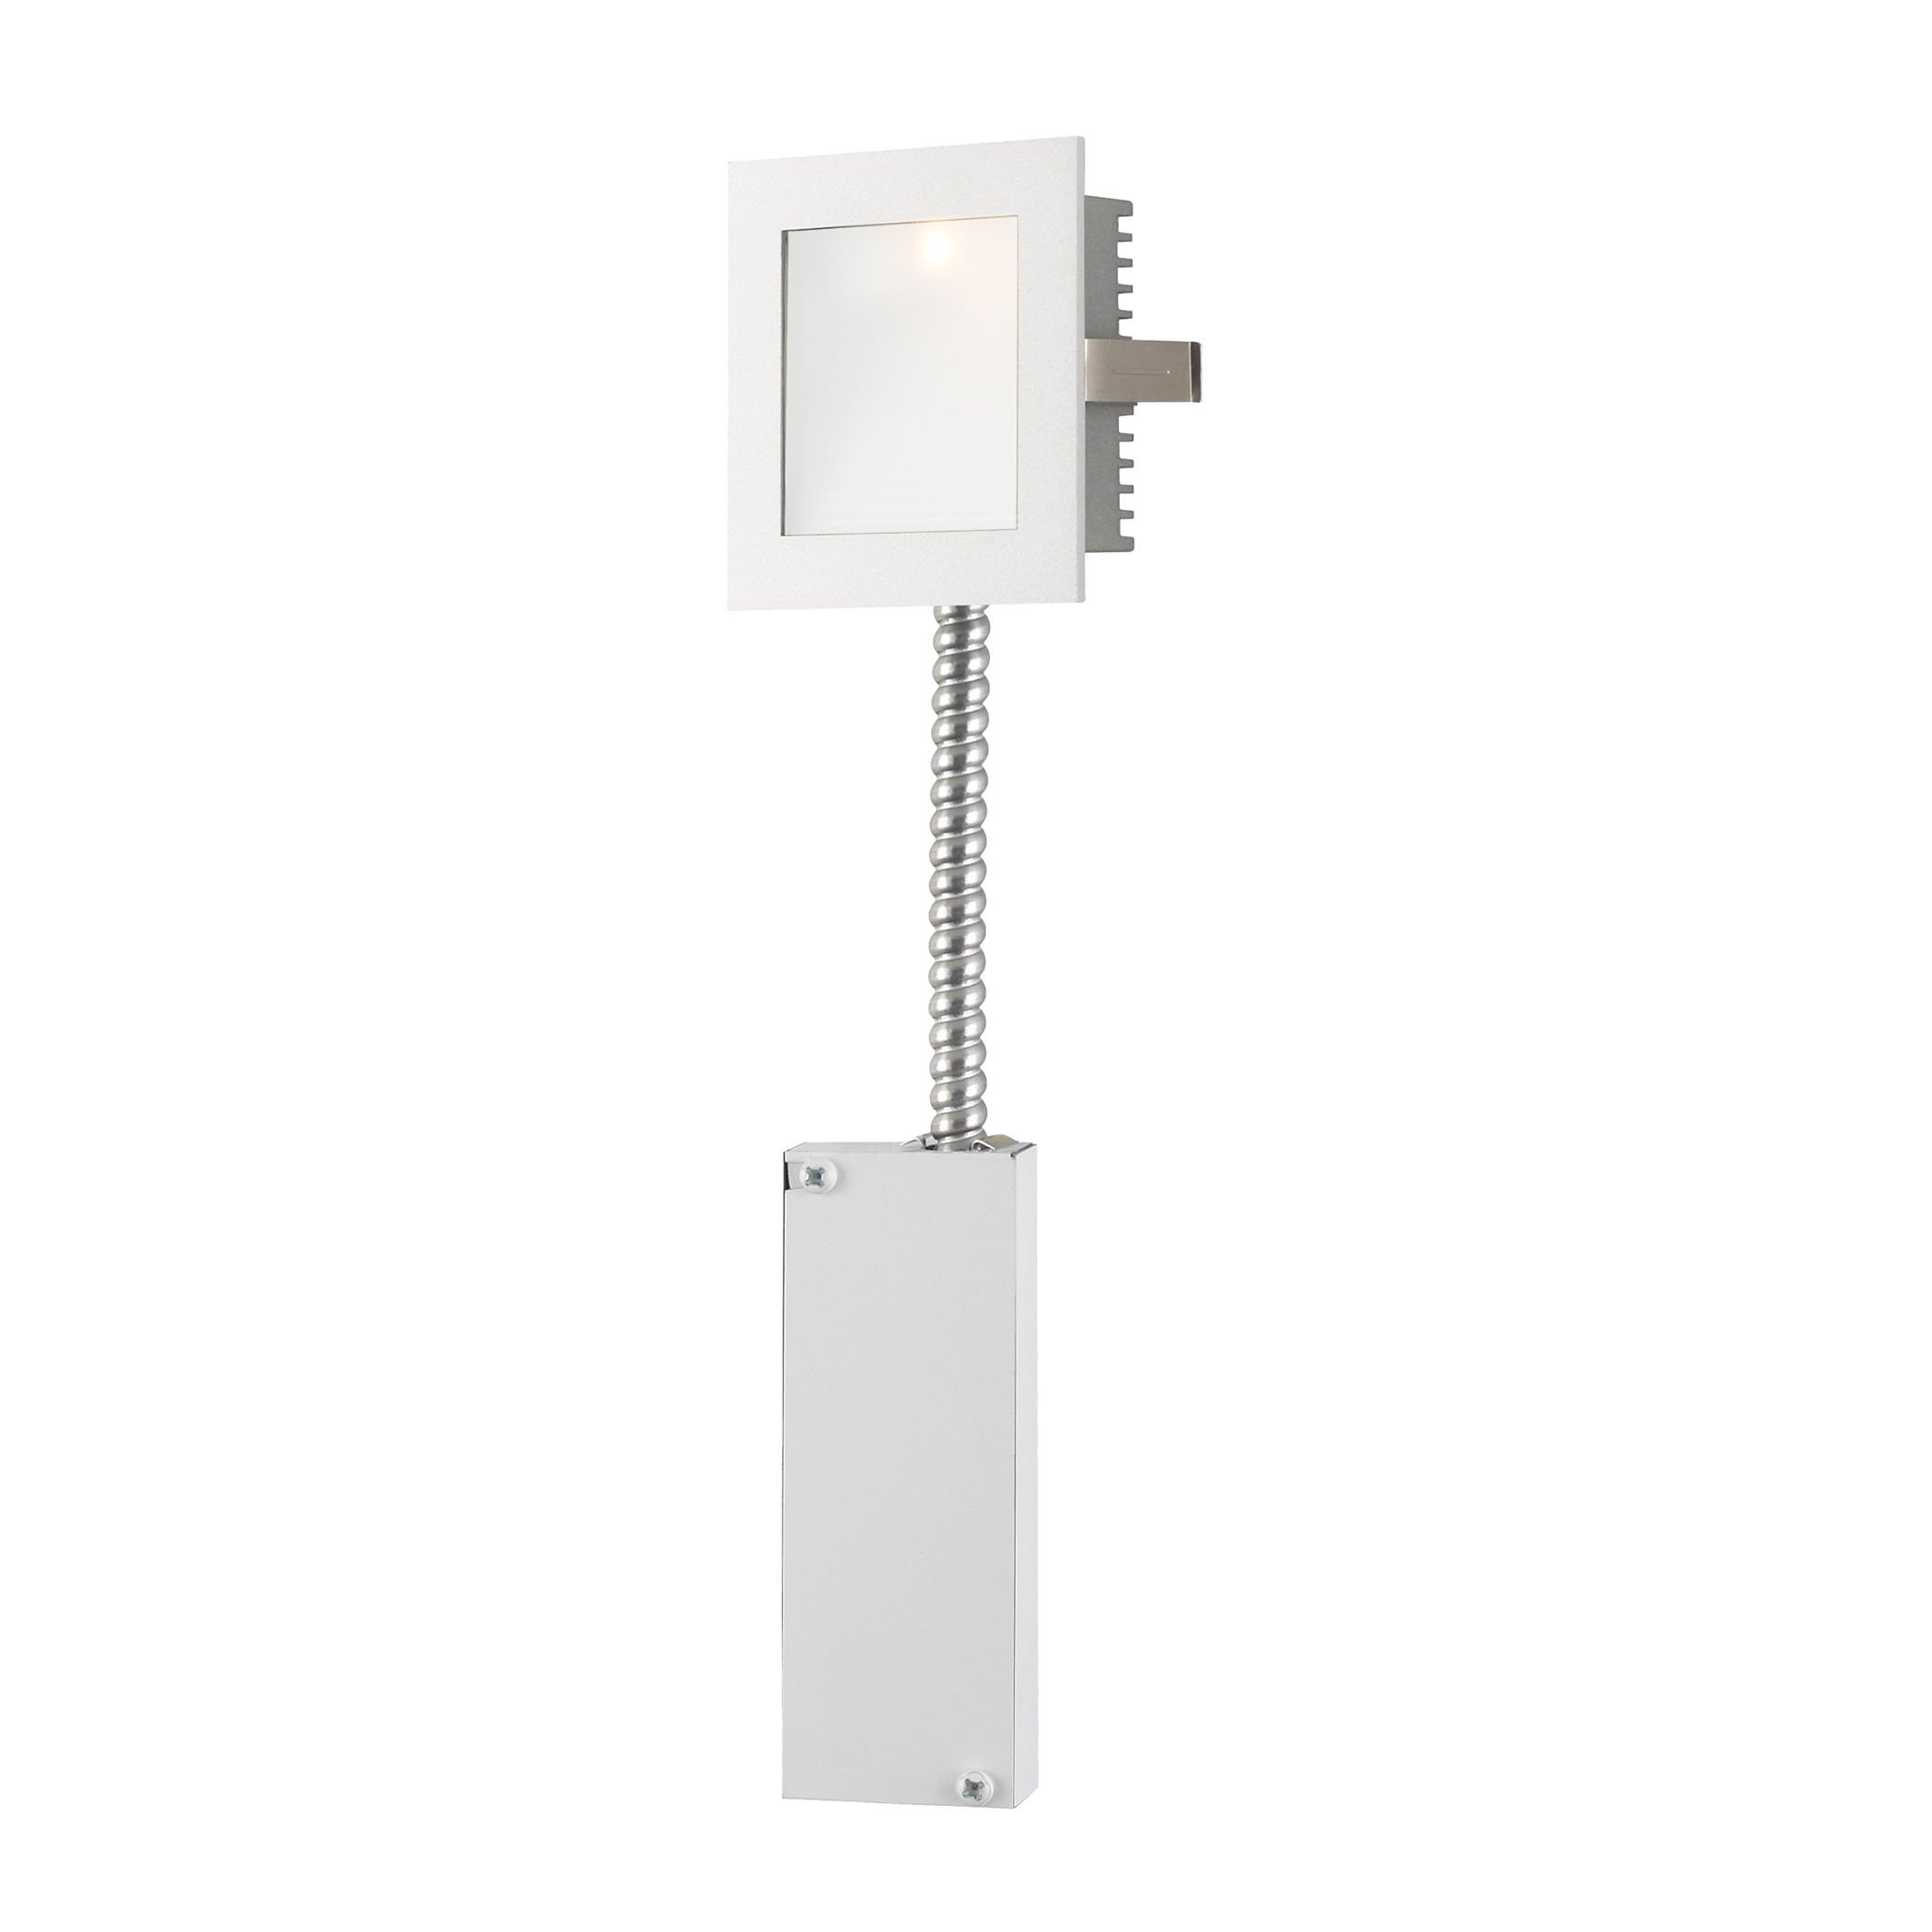 Steplight - Wall Recessed Xenon W/ Retrofit Housing Opal Lens / White Trim. by AR Lighting